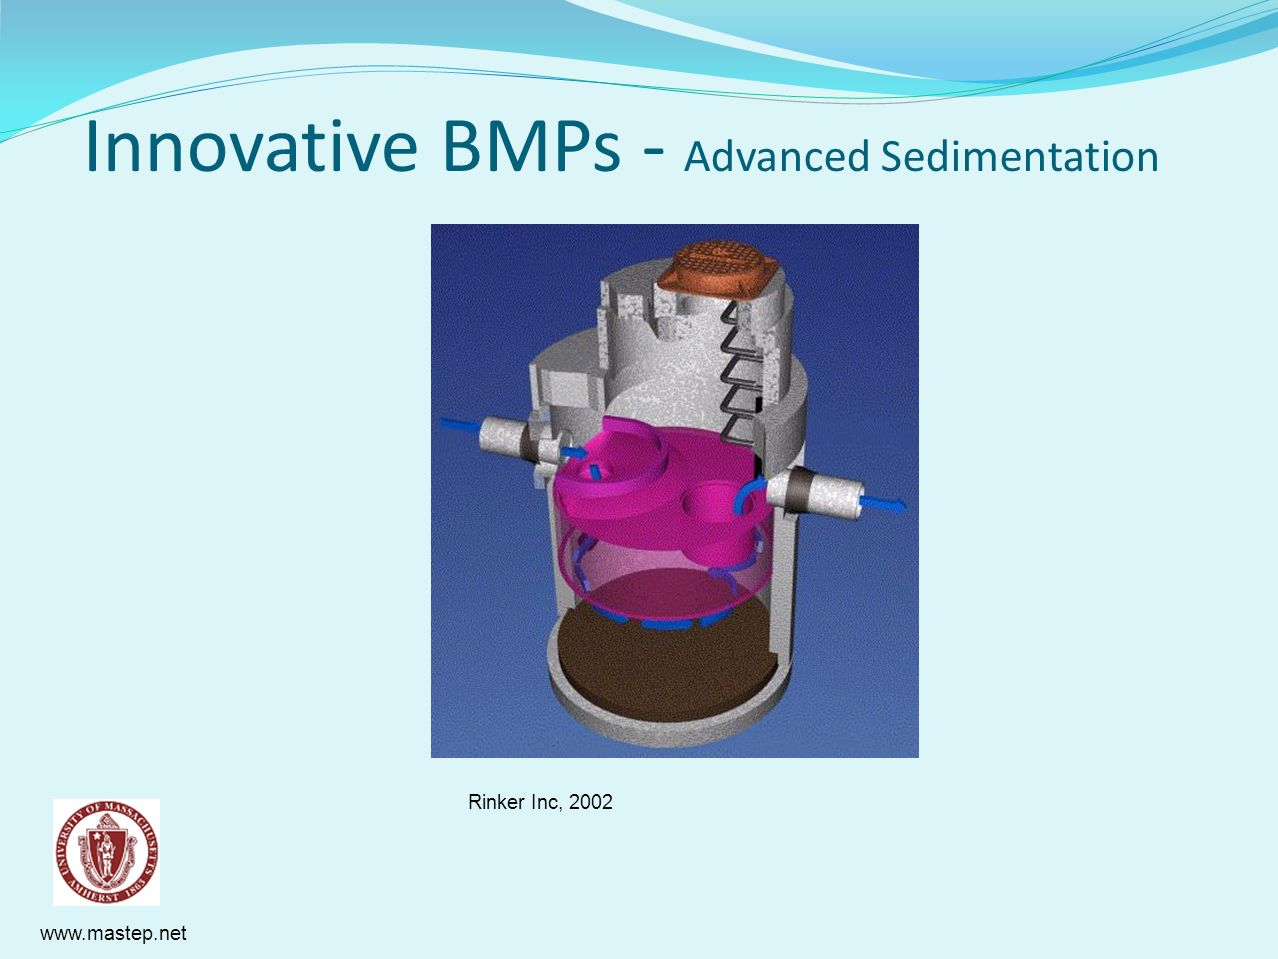 Innovative BMPs - Advanced Sedimentation